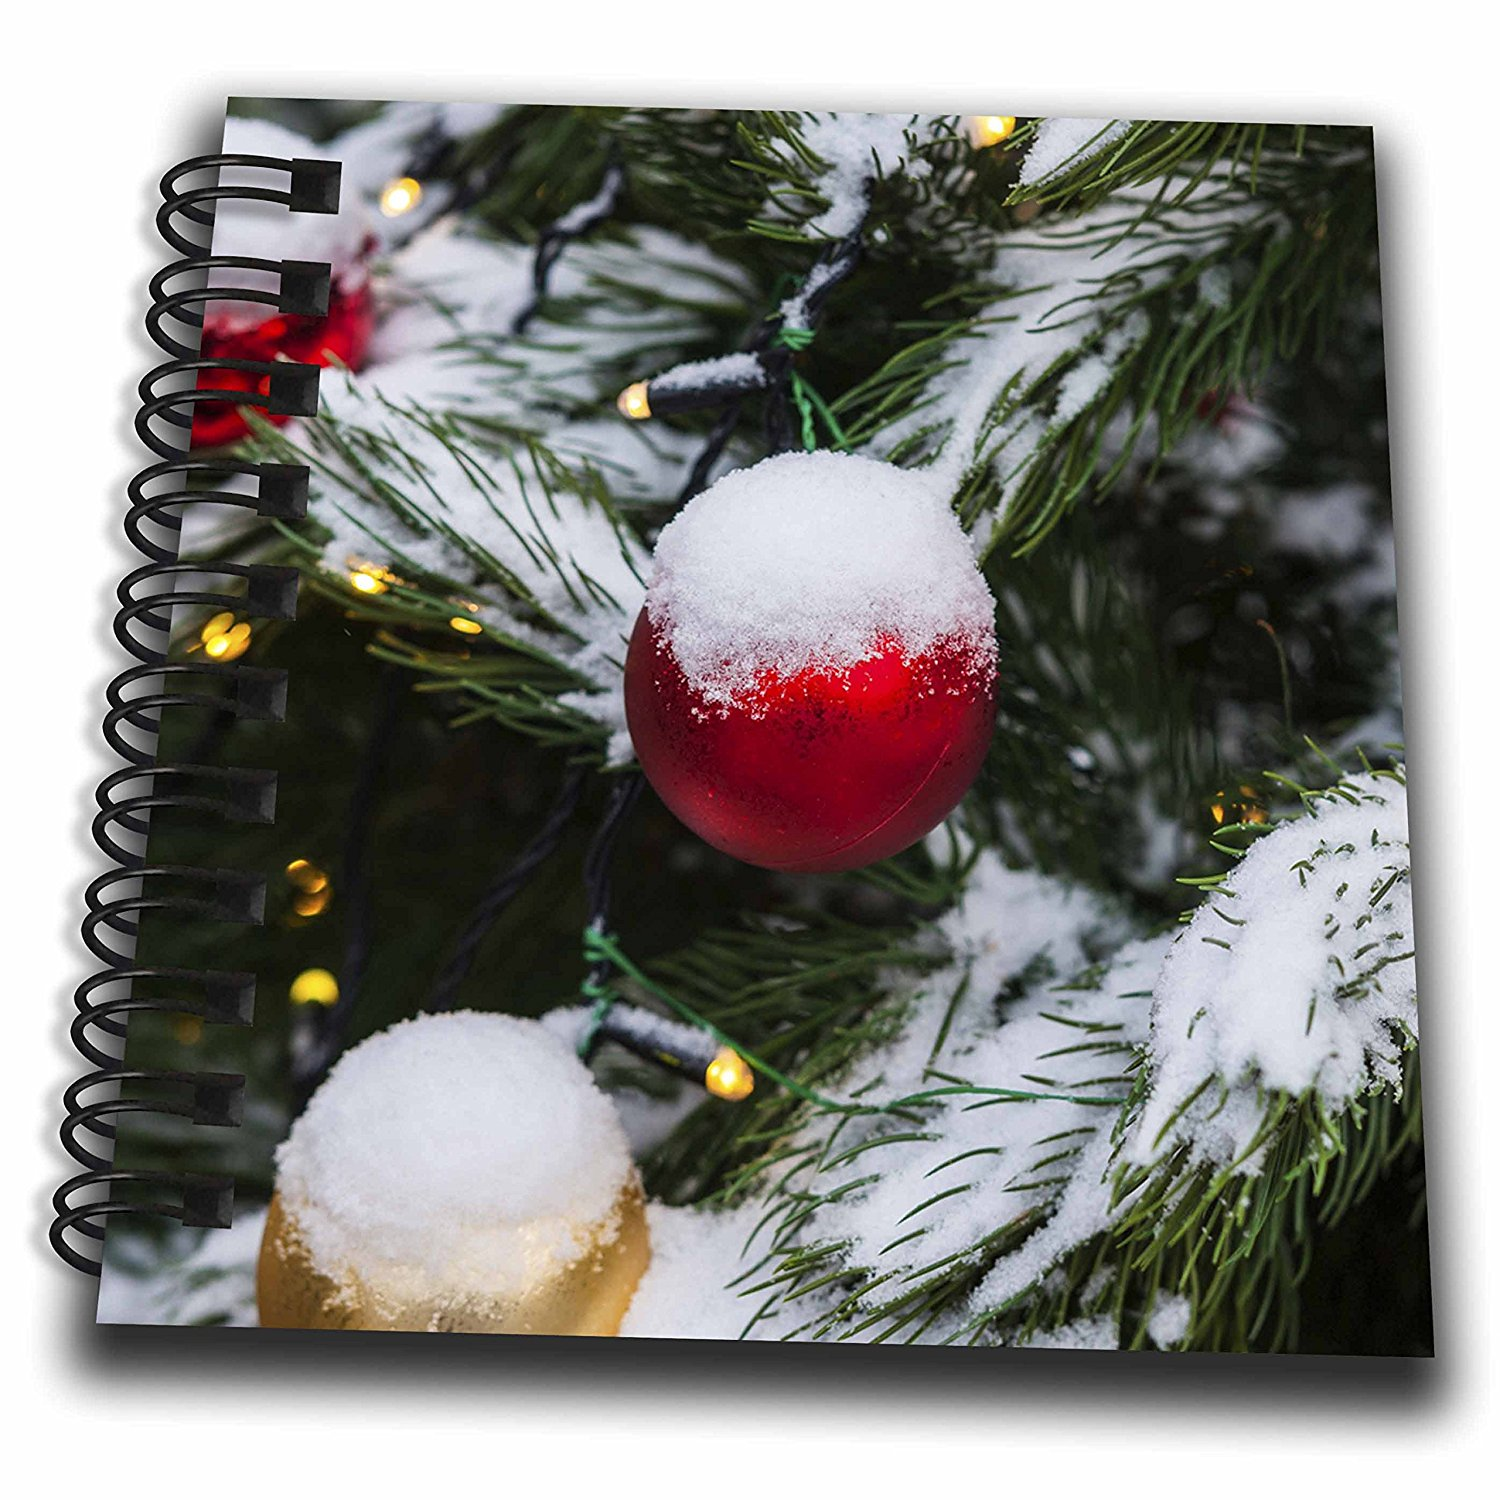 3dRose Alexis Photography - Holidays Christmas - Red Christmas ornament ball on a snow covered tree outdoor, lights - Mini Notepad 4 x 4 inch (db_275968_3)